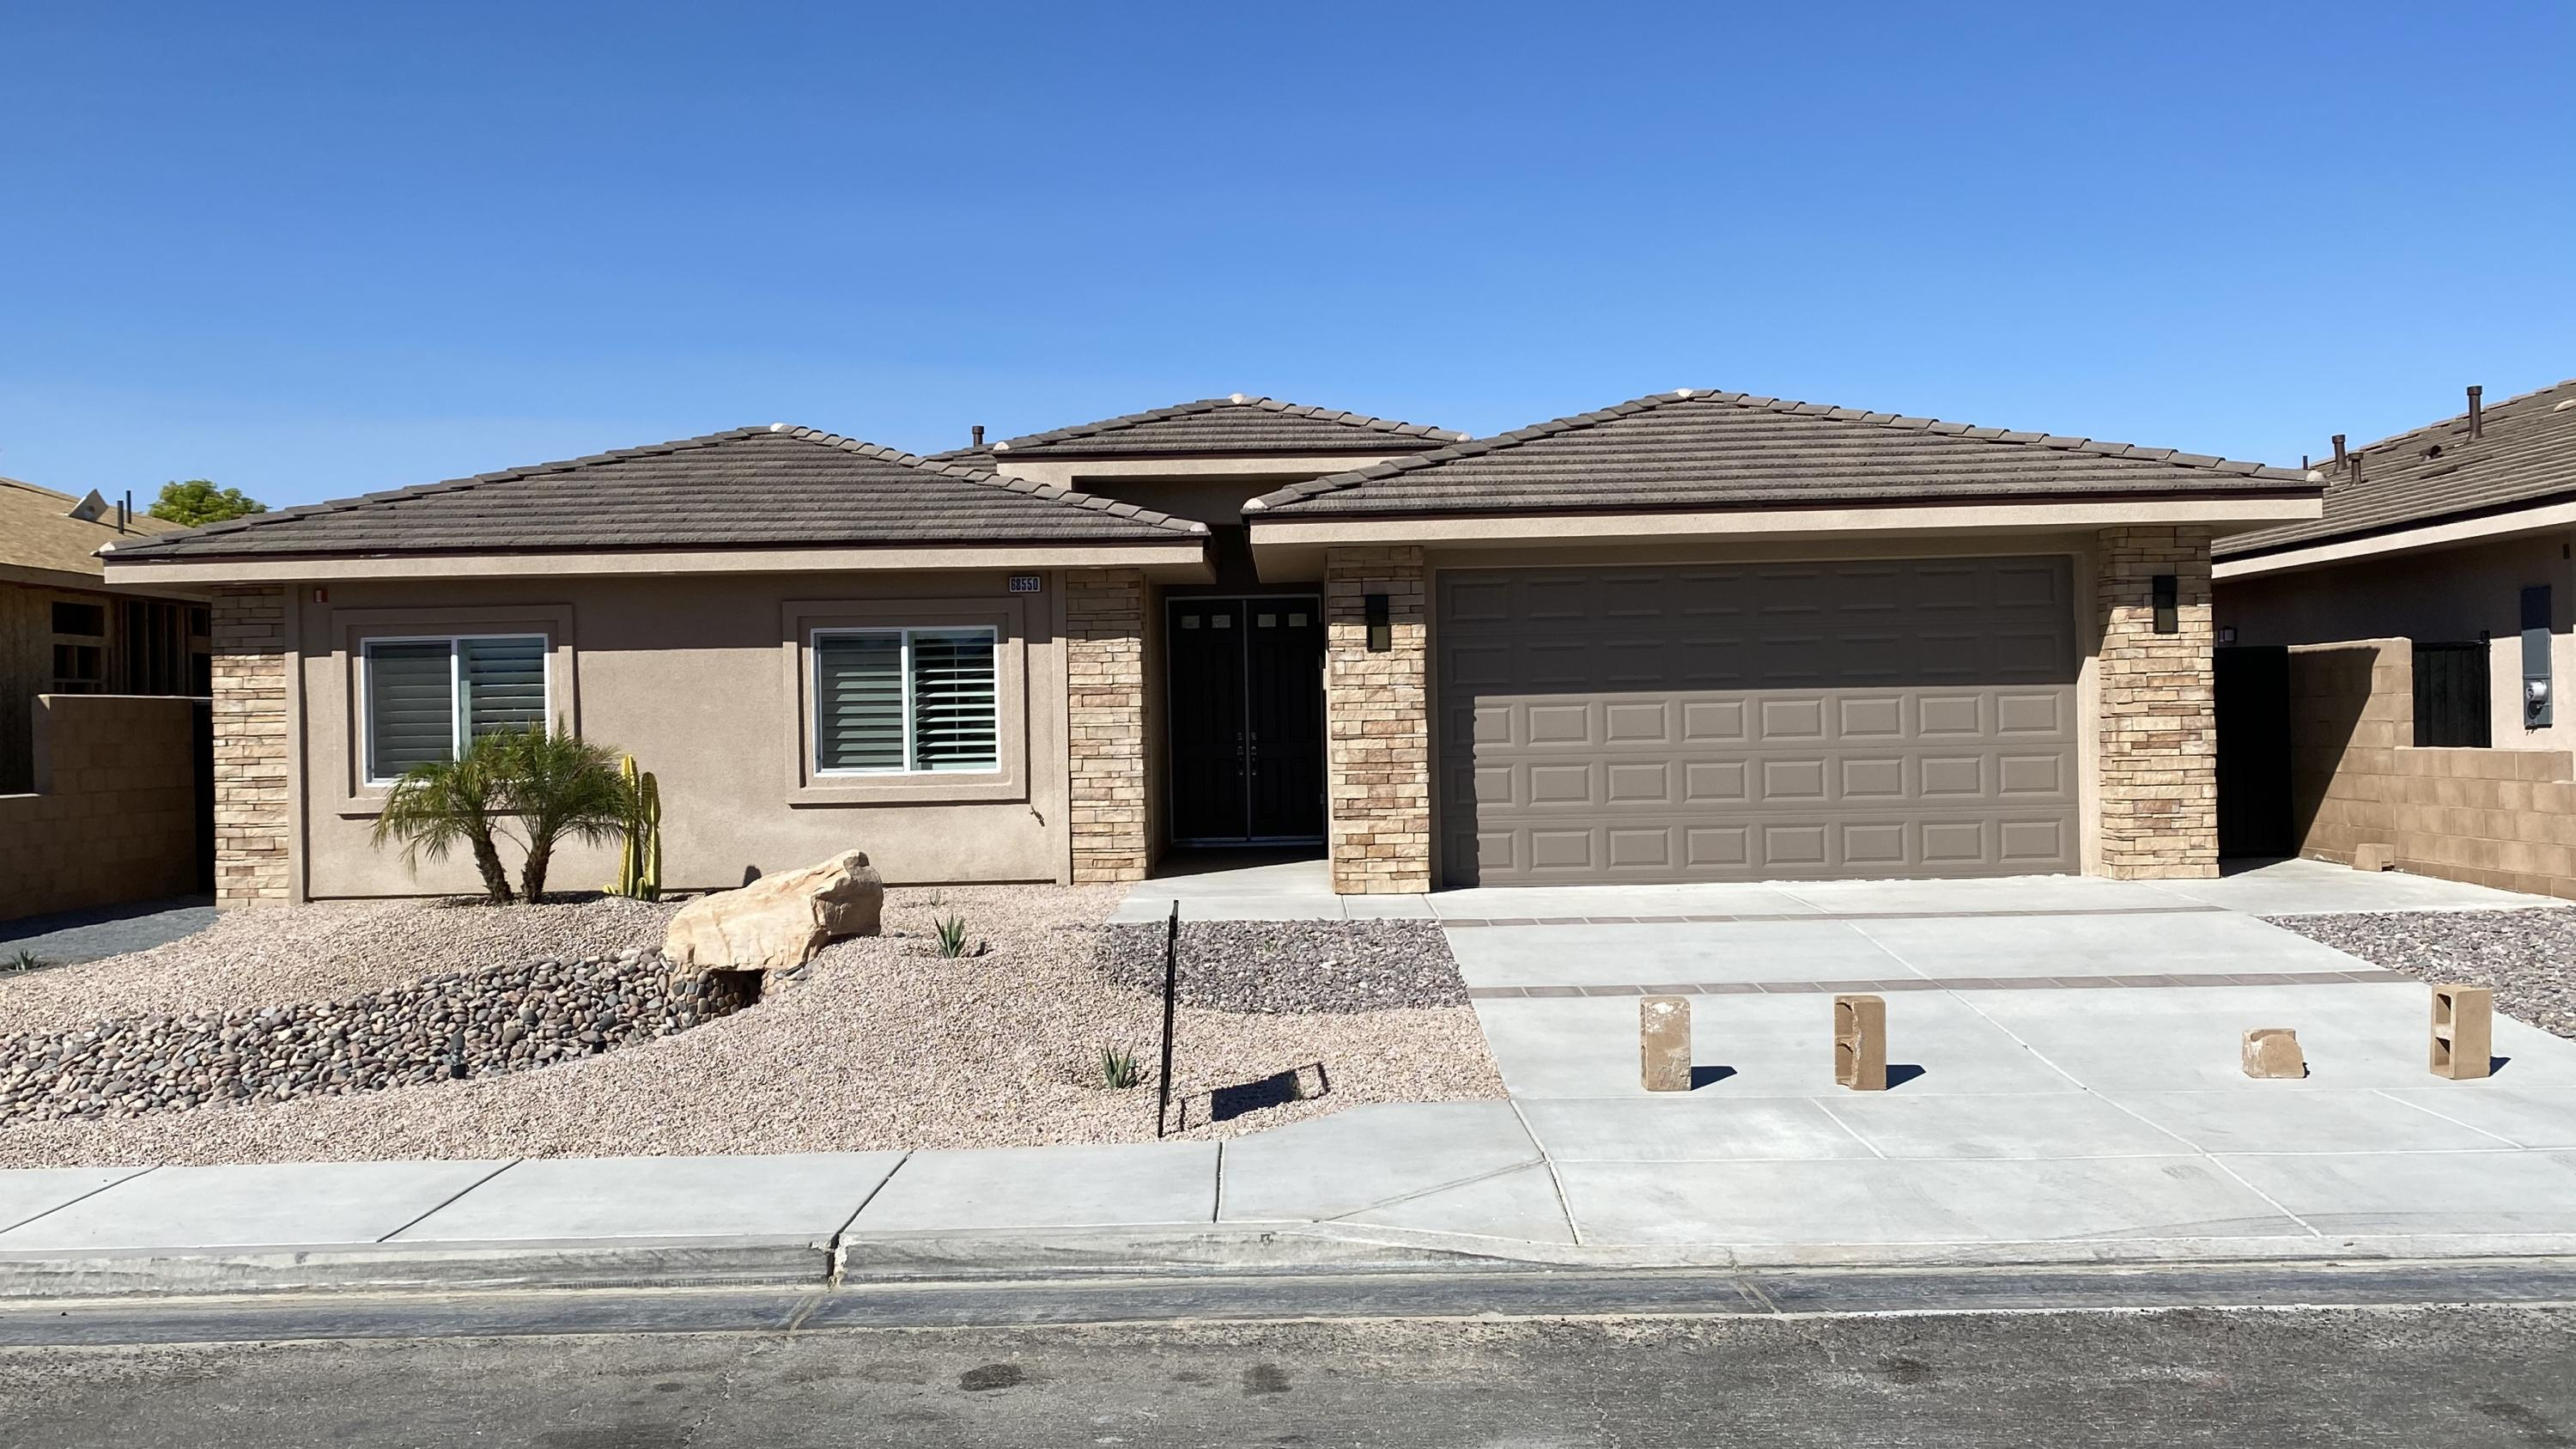 Your looking for a new Home? Look no more, this New Home has it all! 4 Bedrooms, 3 Baths, 2500 S.F., Pool & Spa with low maintenance front and back landscaping with lights. 2 Car Finished Garage (530sf garage, and insulated, 10 ft ceilings and 8 foot garage doors). Covered Patio (Over 200 SF), Block Wall Fencing with Rod iron gates on both sides. House is Extremely Energy Efficient (R 60 insulation in the ceilings, and R 27 on the walls, 2x6 Construction. Dual A/c units. 10 Foot Ceilings in the great room areas and 9 Foot ceilings in the bedrooms with ceiling fans throughout. Quartz Counter tops in Kitchen & Bathrooms. Upgraded Stainless Steel Appliances (Refrigerator, Stove, Dishwasher, Micro-Hood). Kitchen includes Pantry. Fans in each Bedroom, Great Room and Breakfast Nook. Recessed Lighting, Two-Tone Paint. Ceramic Tile throughout, built above Energy Efficiency Standards. This home has many other upgrades and incredible Mountain views, it's a must see!